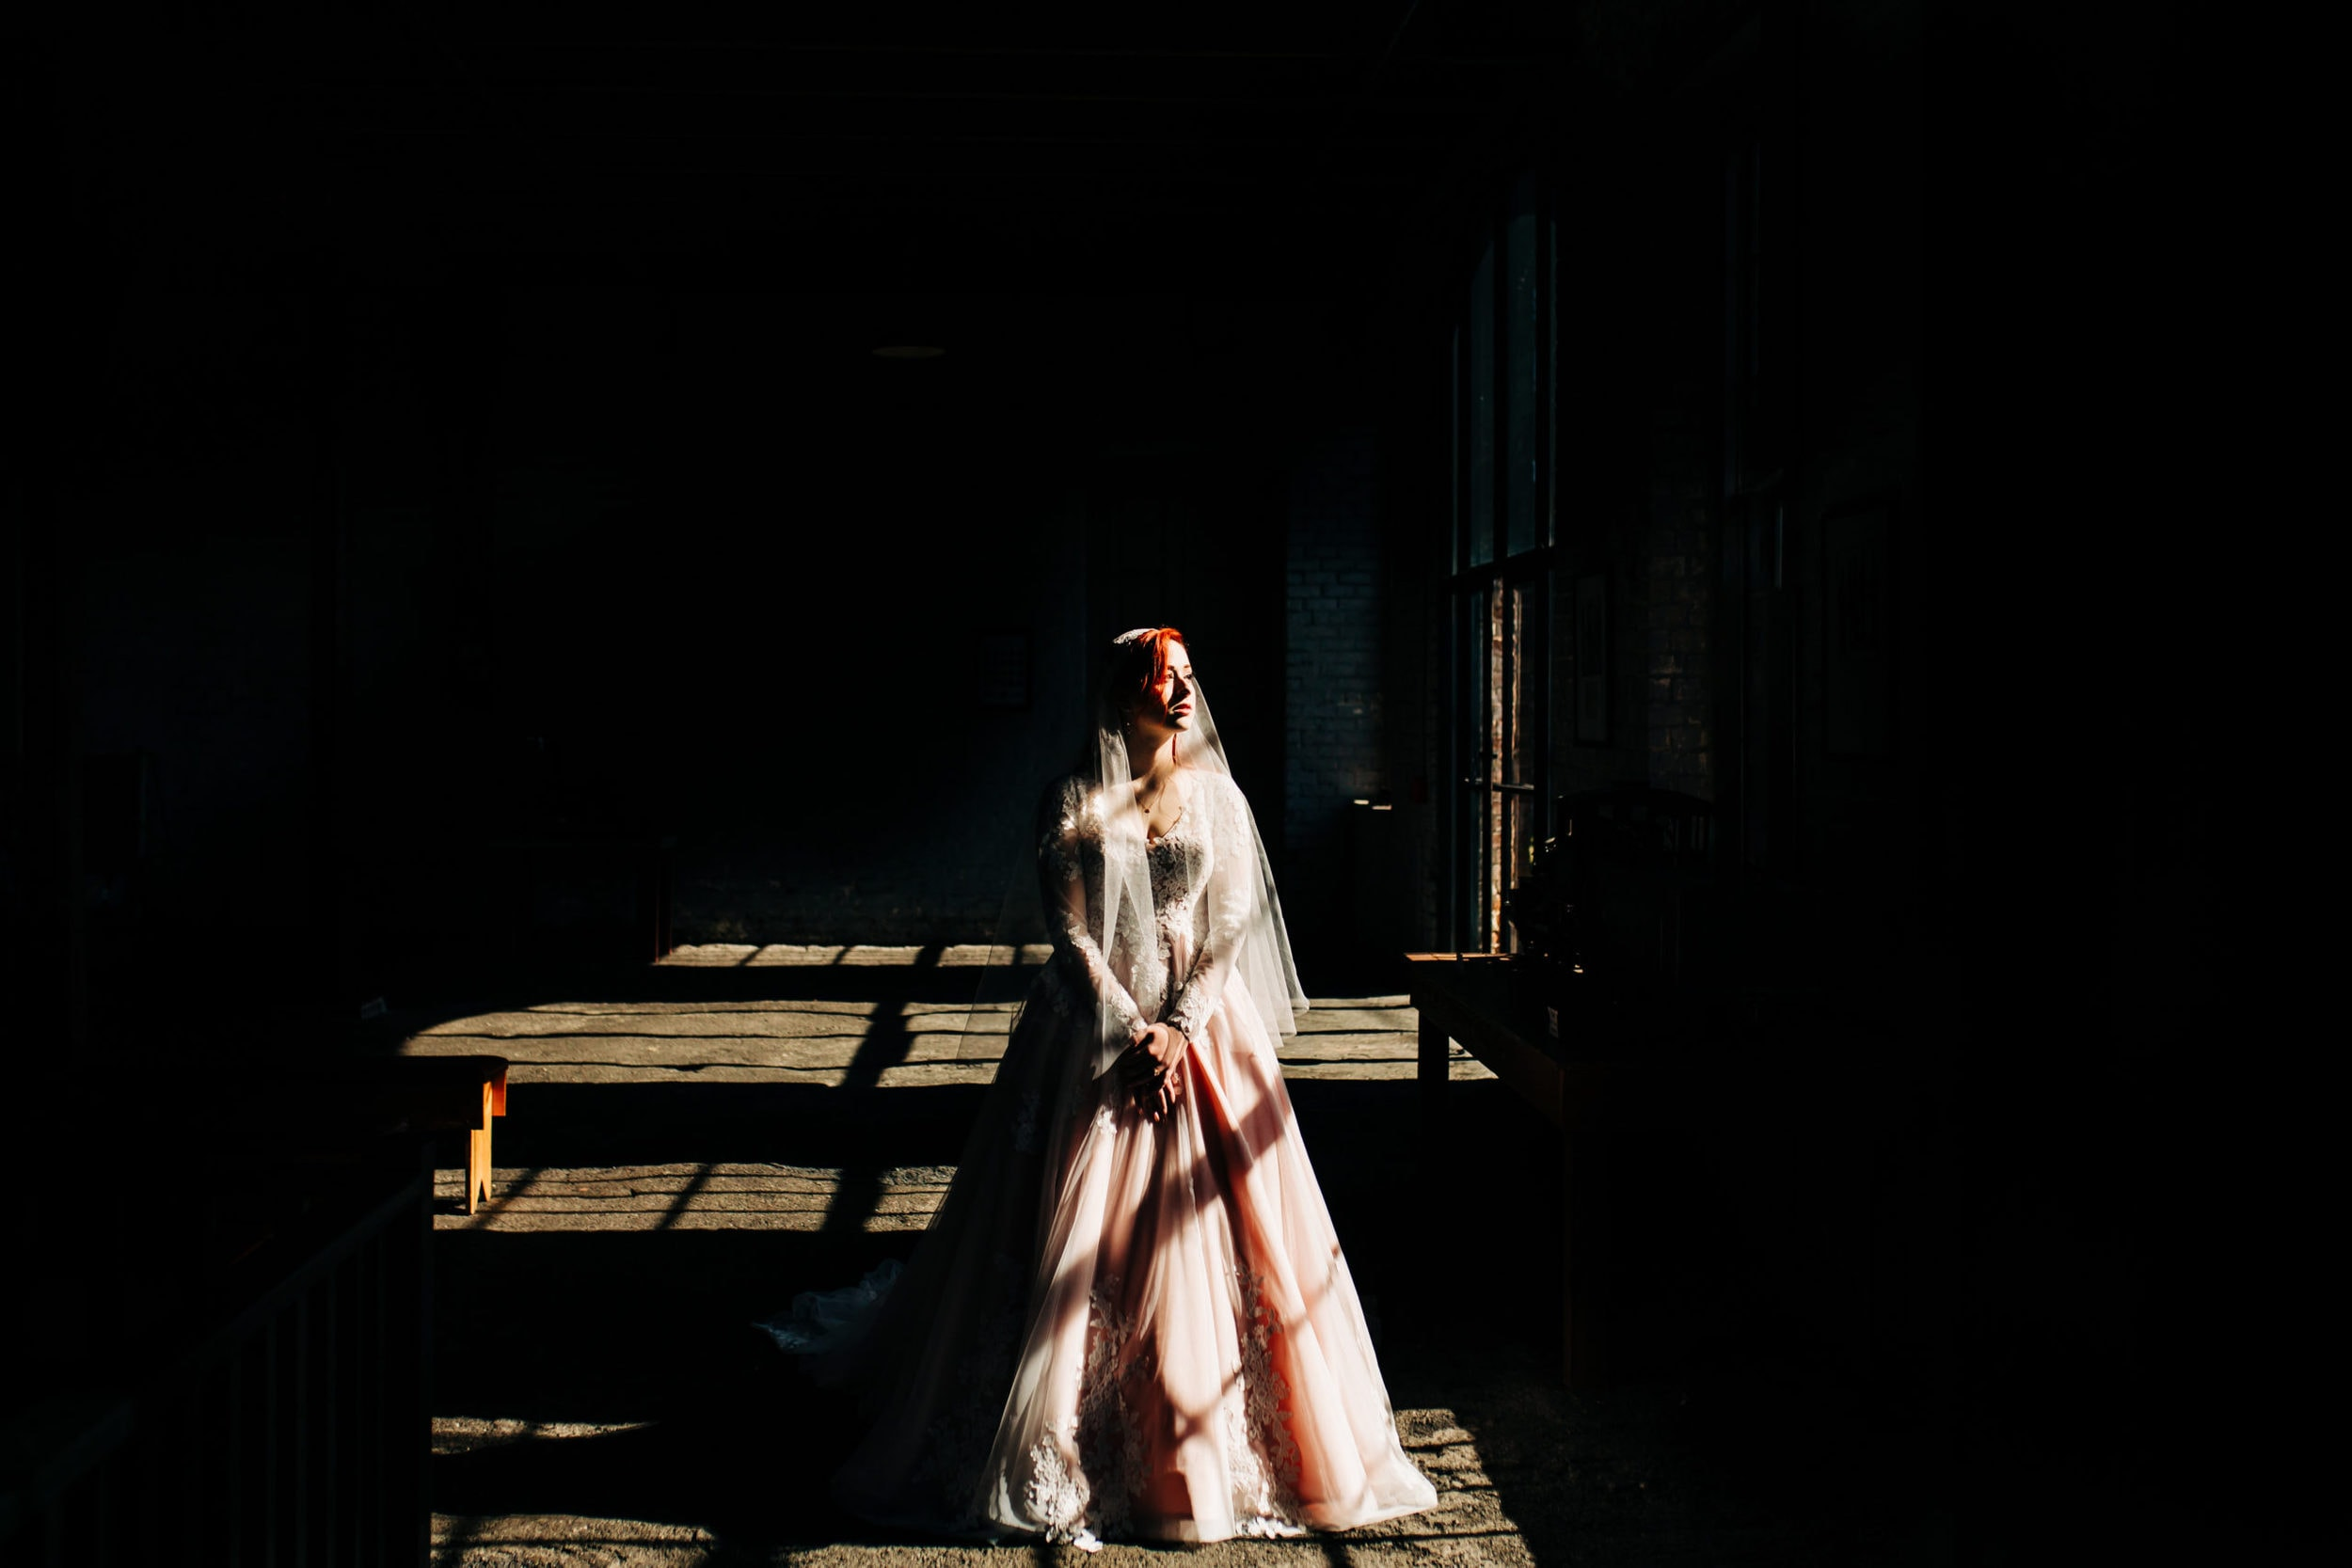 bride in long sleeved blush dress standing dramatically in window light surrounded by darkness at the Georgia state railroad museum